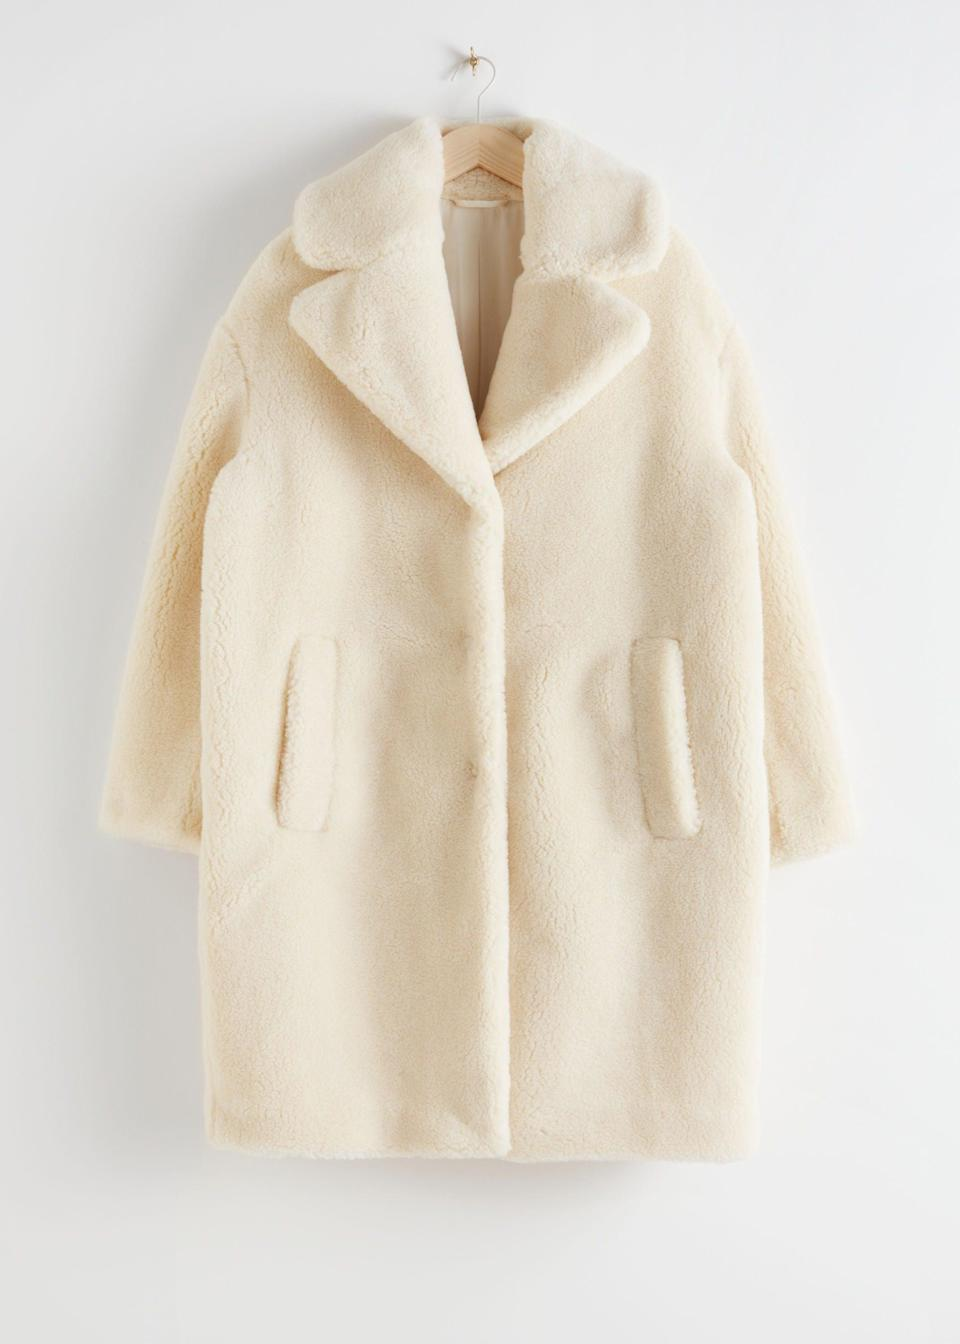 """<br><br><strong>& Other Stories</strong> Oversized Faux Shearling Coat, $, available at <a href=""""https://www.stories.com/en_gbp/clothing/jackets-coats/fauxfur/product.oversized-faux-shearling-coat-yellow.0657922004.html"""" rel=""""nofollow noopener"""" target=""""_blank"""" data-ylk=""""slk:& Other Stories"""" class=""""link rapid-noclick-resp"""">& Other Stories</a>"""